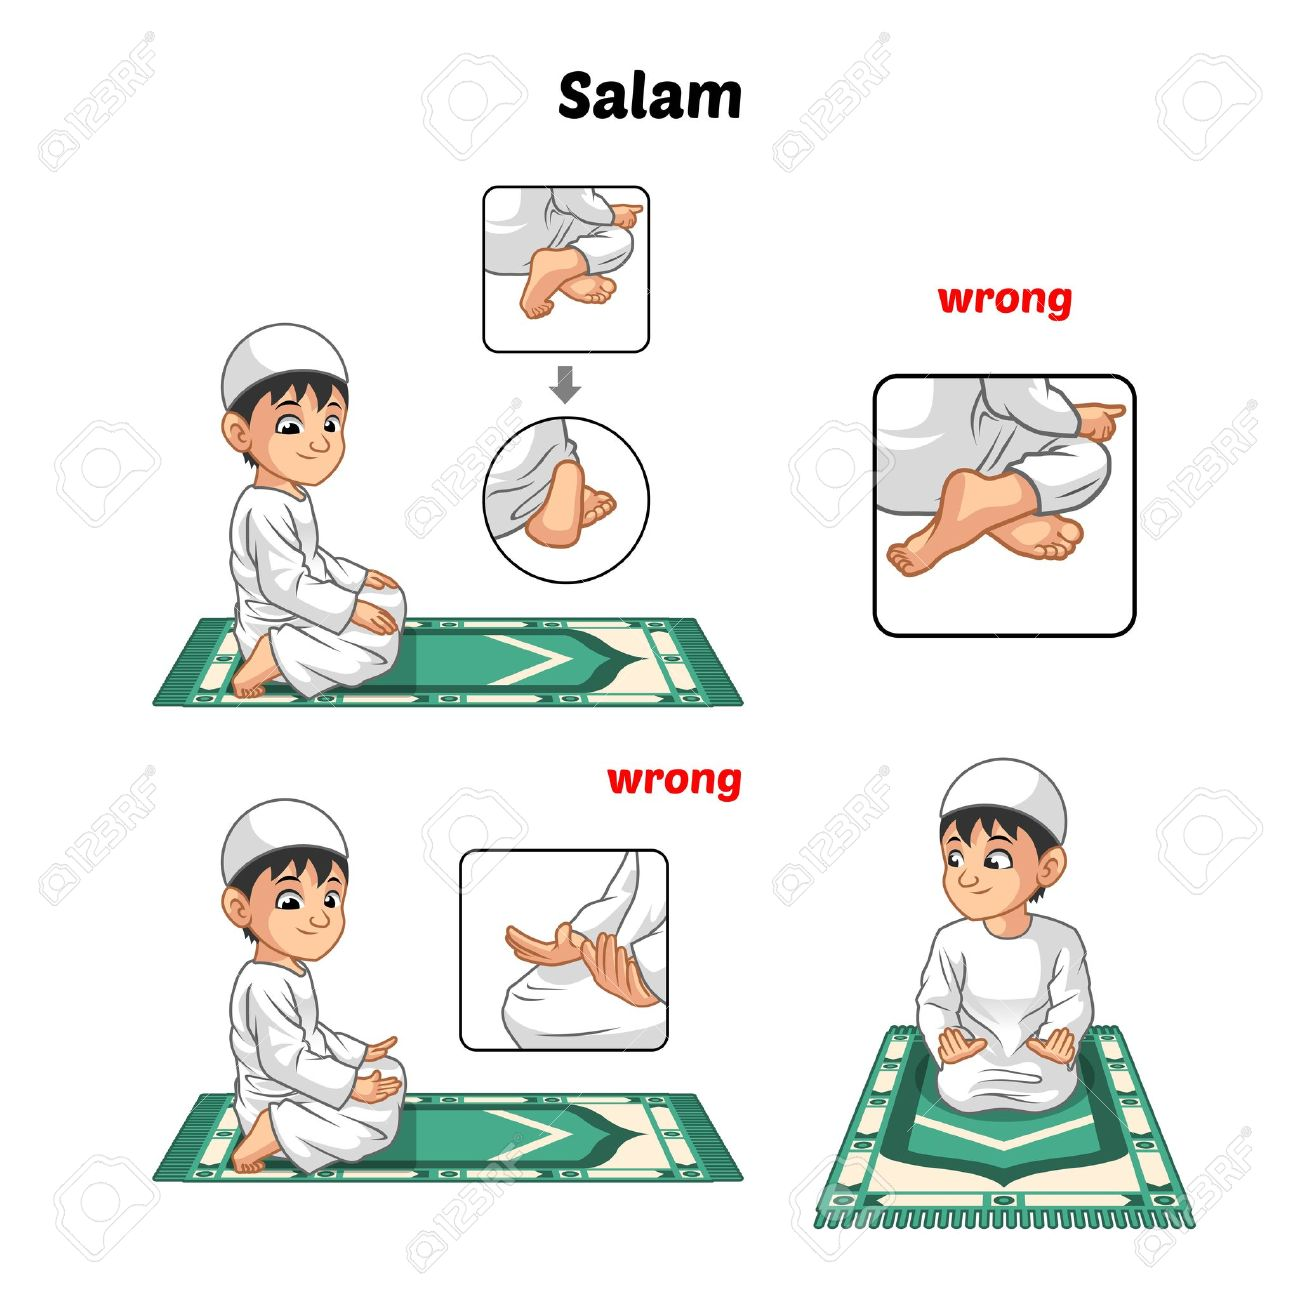 muslim prayer position guide step by step perform by boy salutation